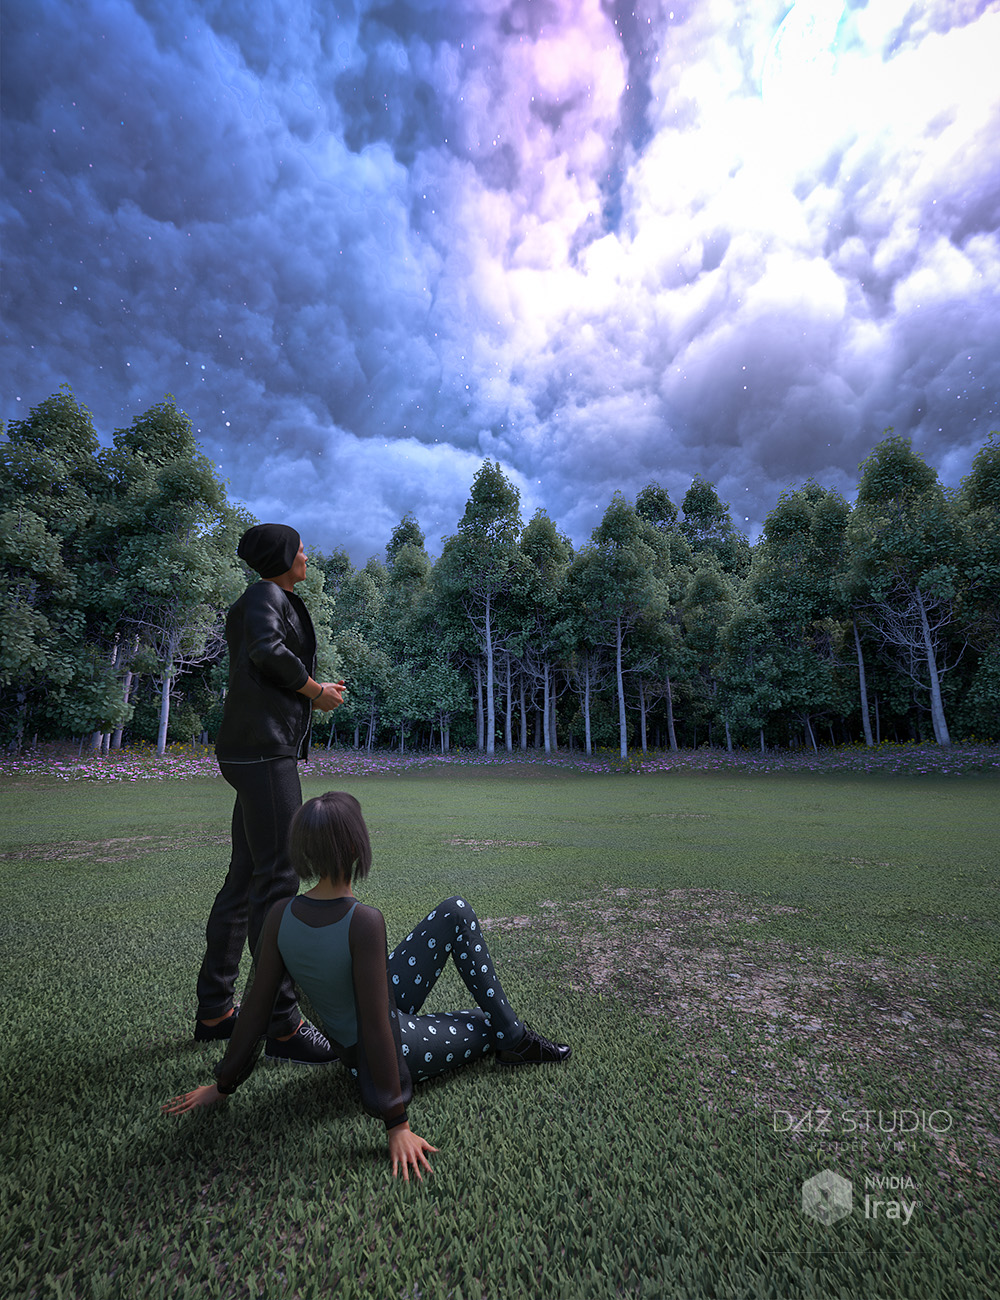 Skies of Sylva - 20 Forest Themed 8K HDRIs for Iray by: DimensionTheory, 3D Models by Daz 3D